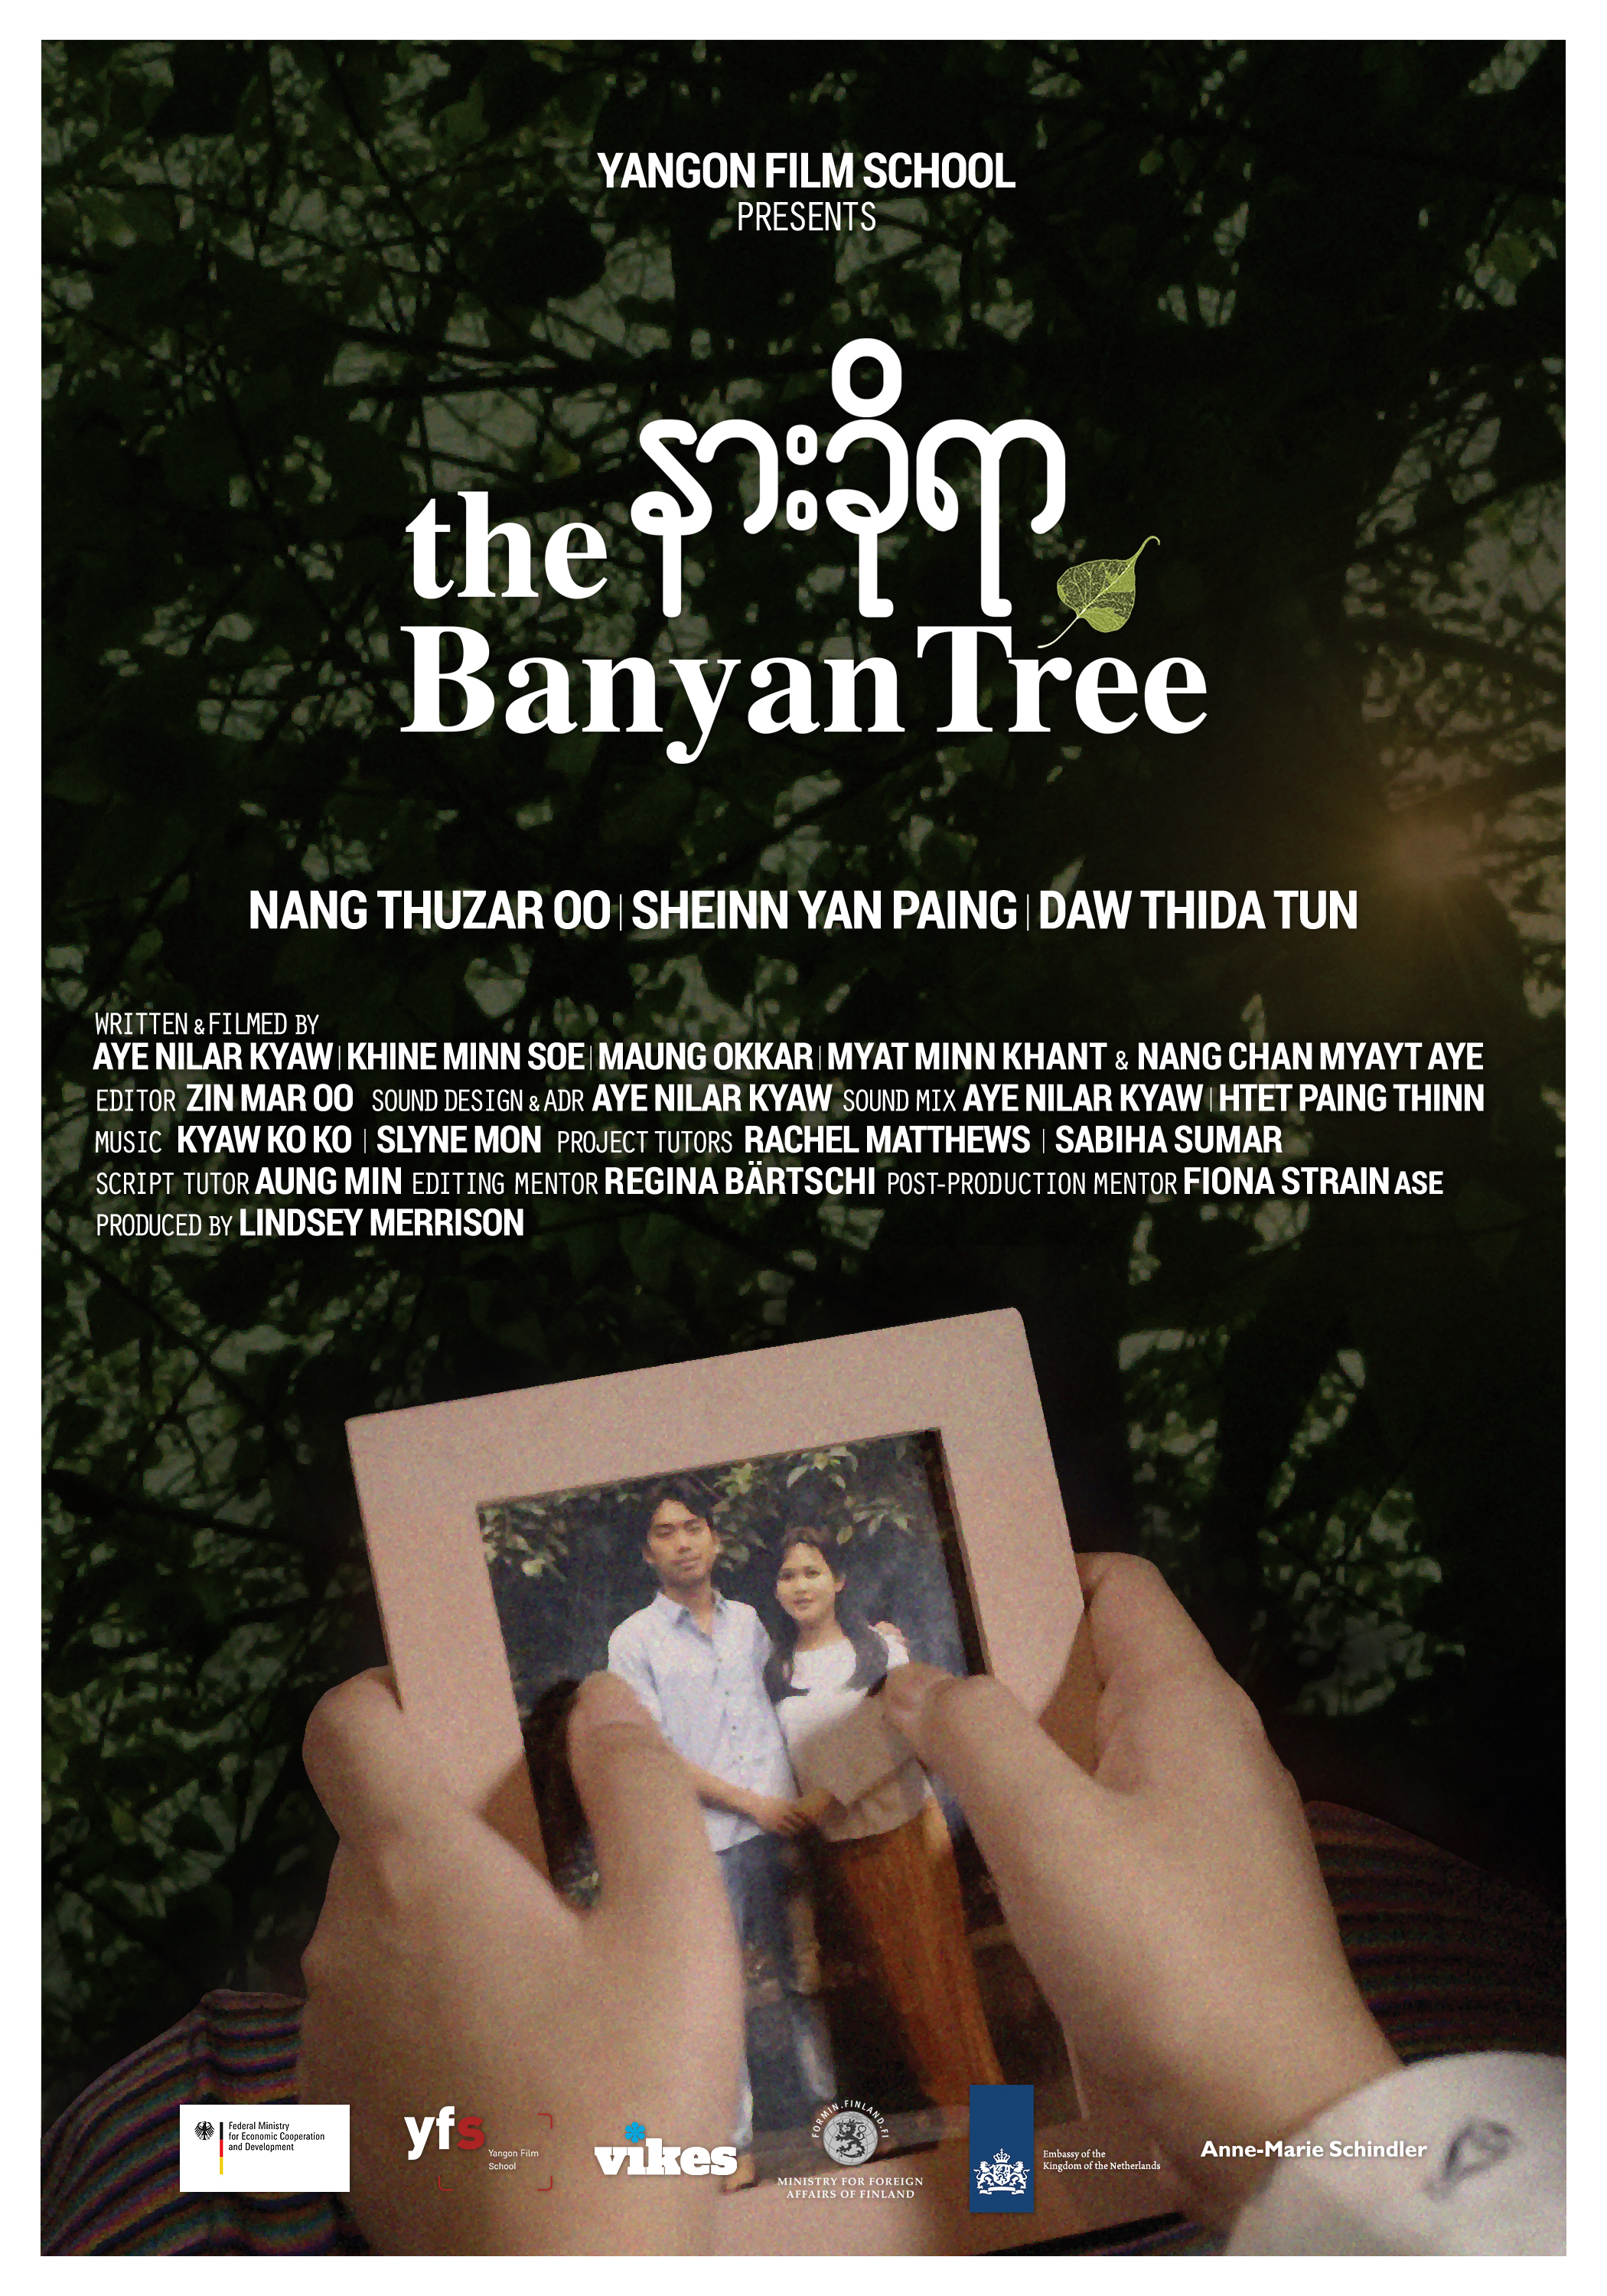 YFS2020TF_poster_THEBANYANTREE_FD-8MAY2020